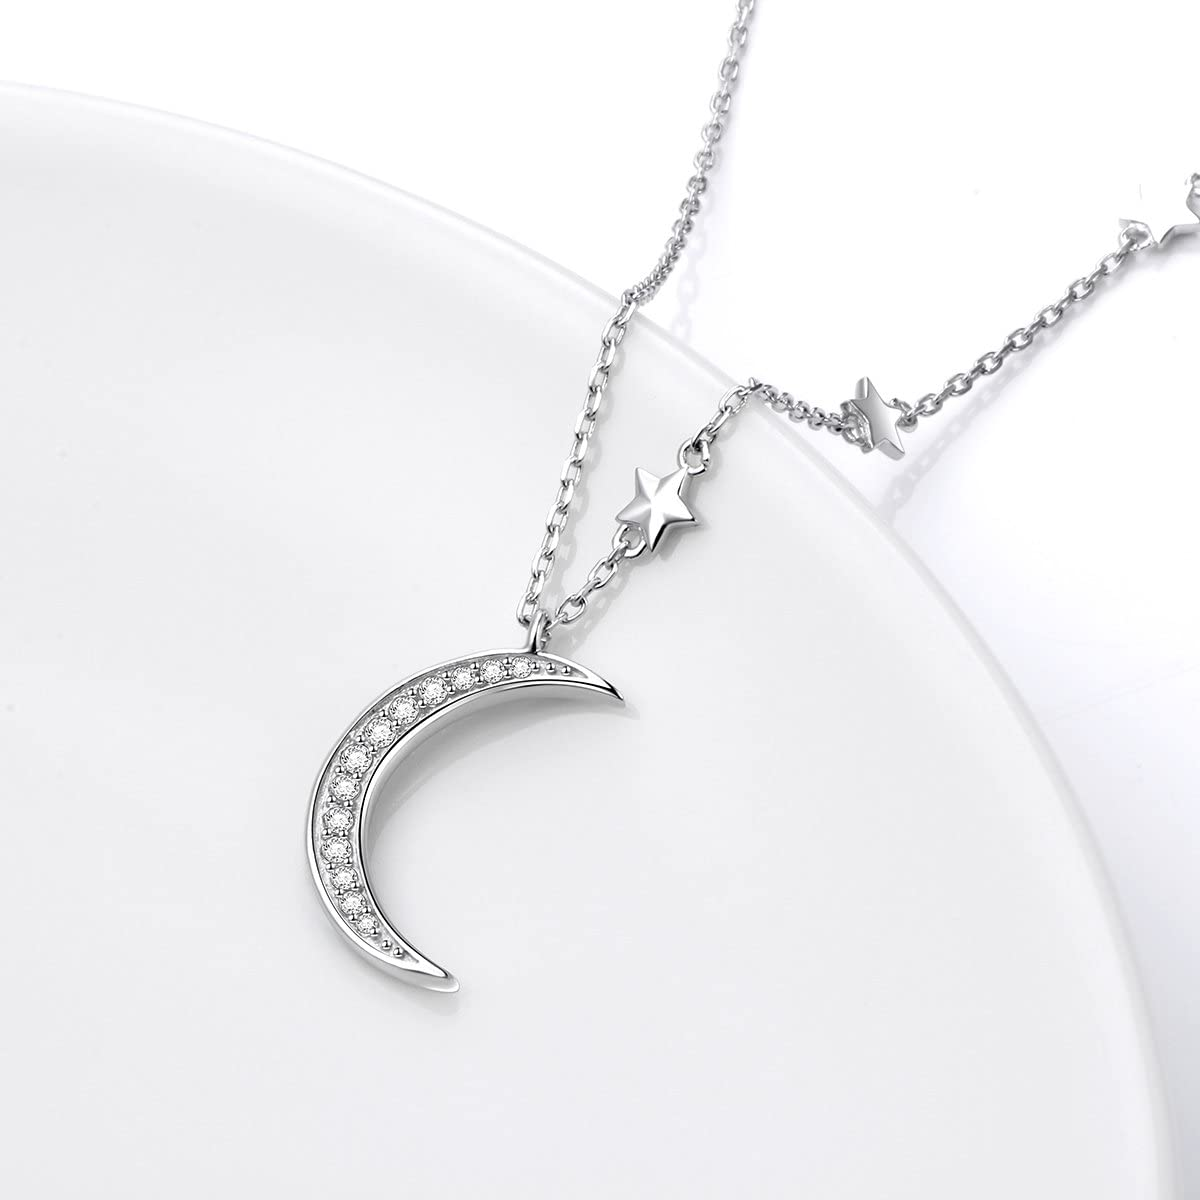 Details about  /Ladies Sterling Silver Cubic Zirconia Star Pattern Locket and Chain R8665//C